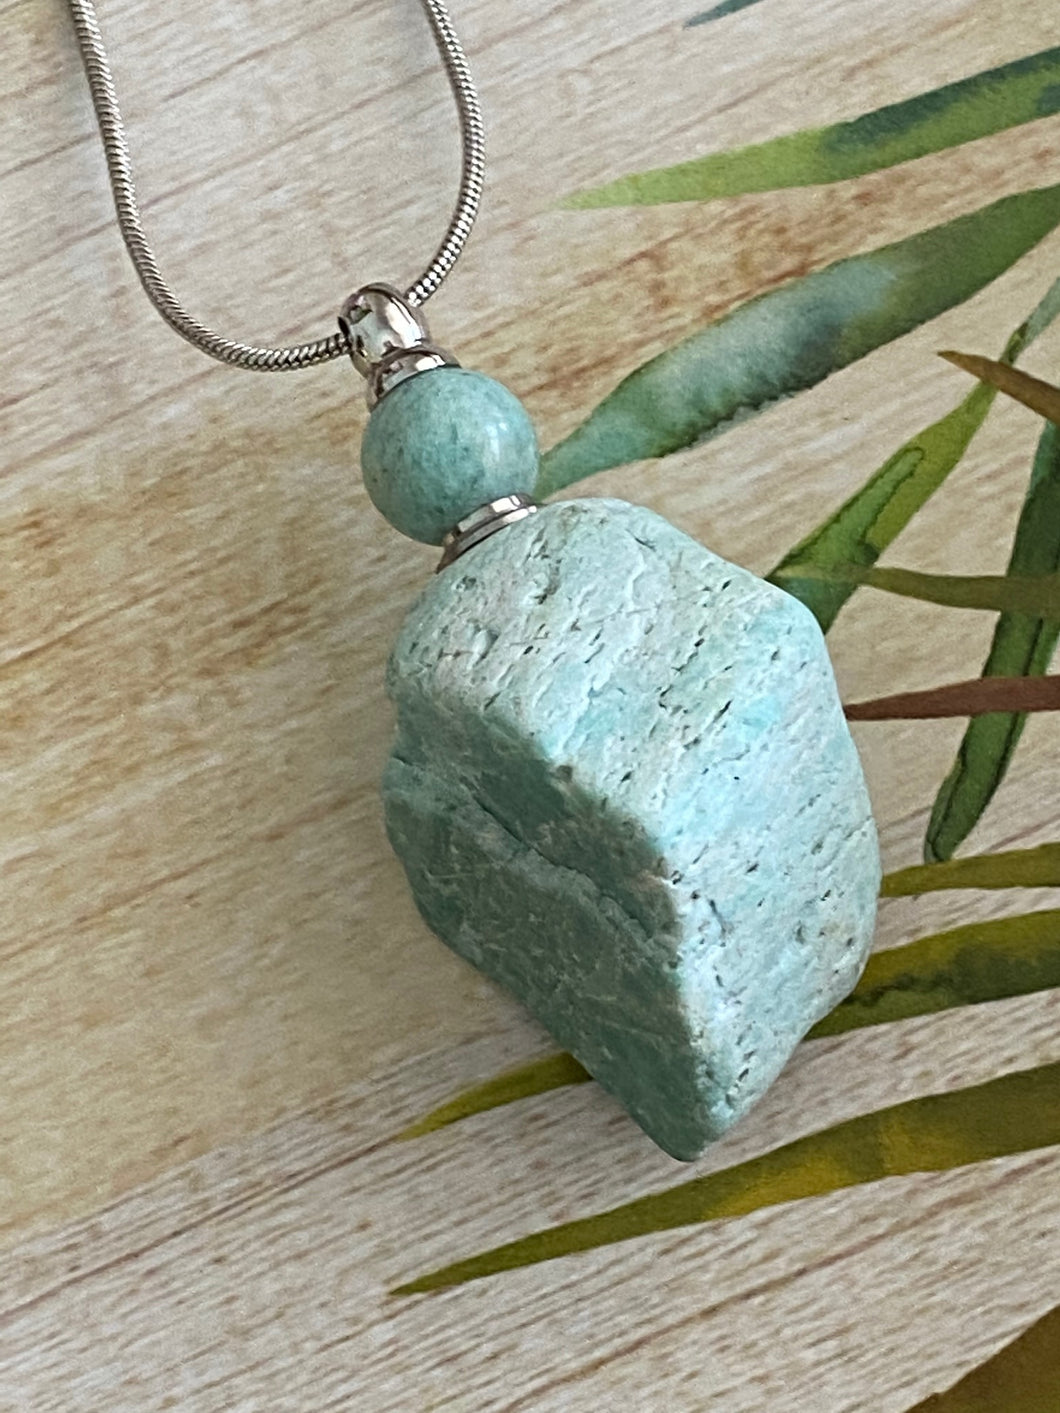 Raw Rough Perfume or Ashes Bottle Pendant Necklace, Handmade Natural Amazonite